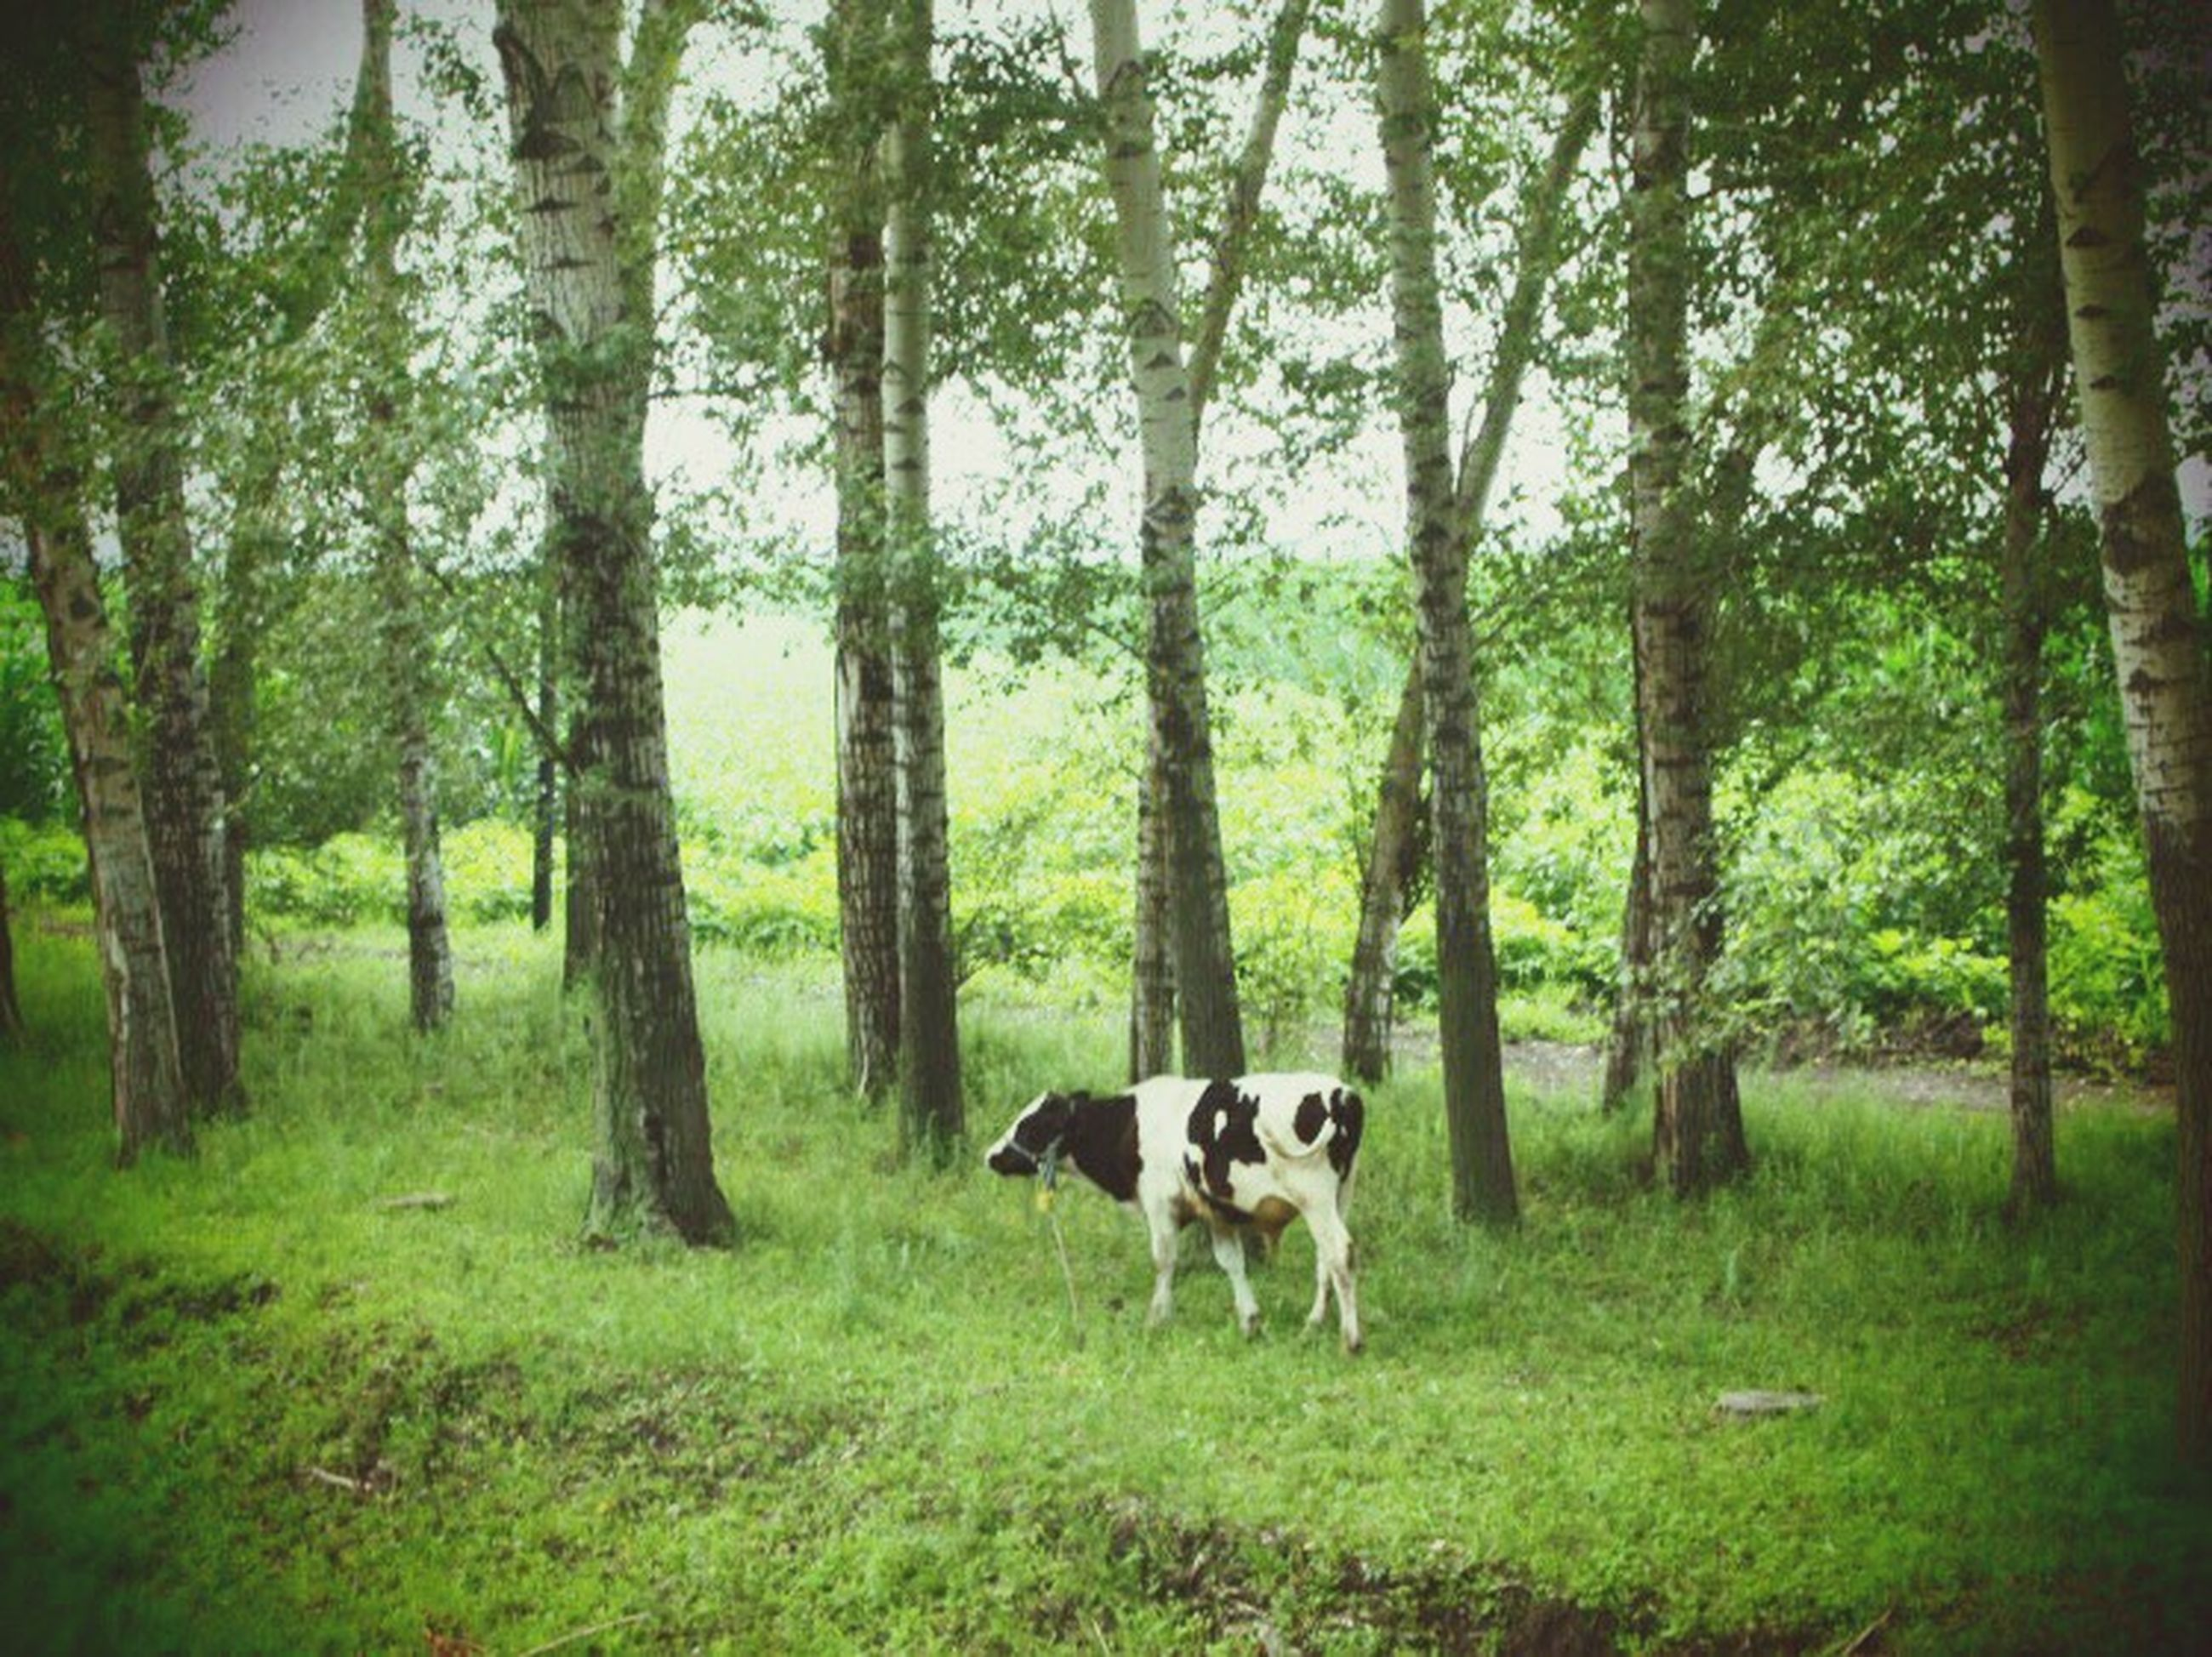 animal themes, mammal, domestic animals, tree, grass, one animal, green color, field, growth, landscape, nature, dog, pets, grassy, two animals, standing, day, grazing, forest, herbivorous